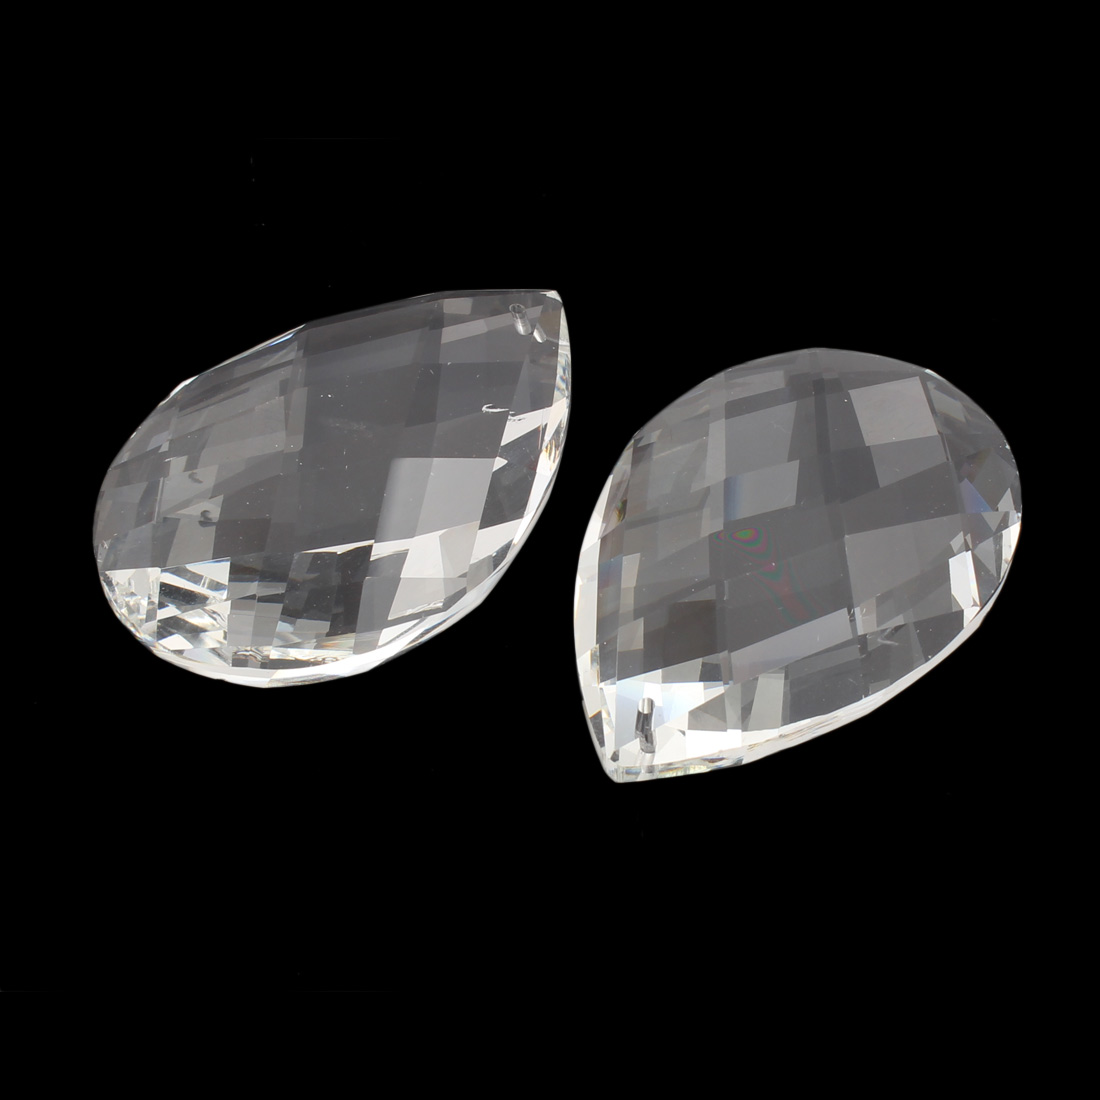 5pcs 76mm Long Faux Craystal Faceted Teardrop Shape Beads for DIY Light - image 1 of 2